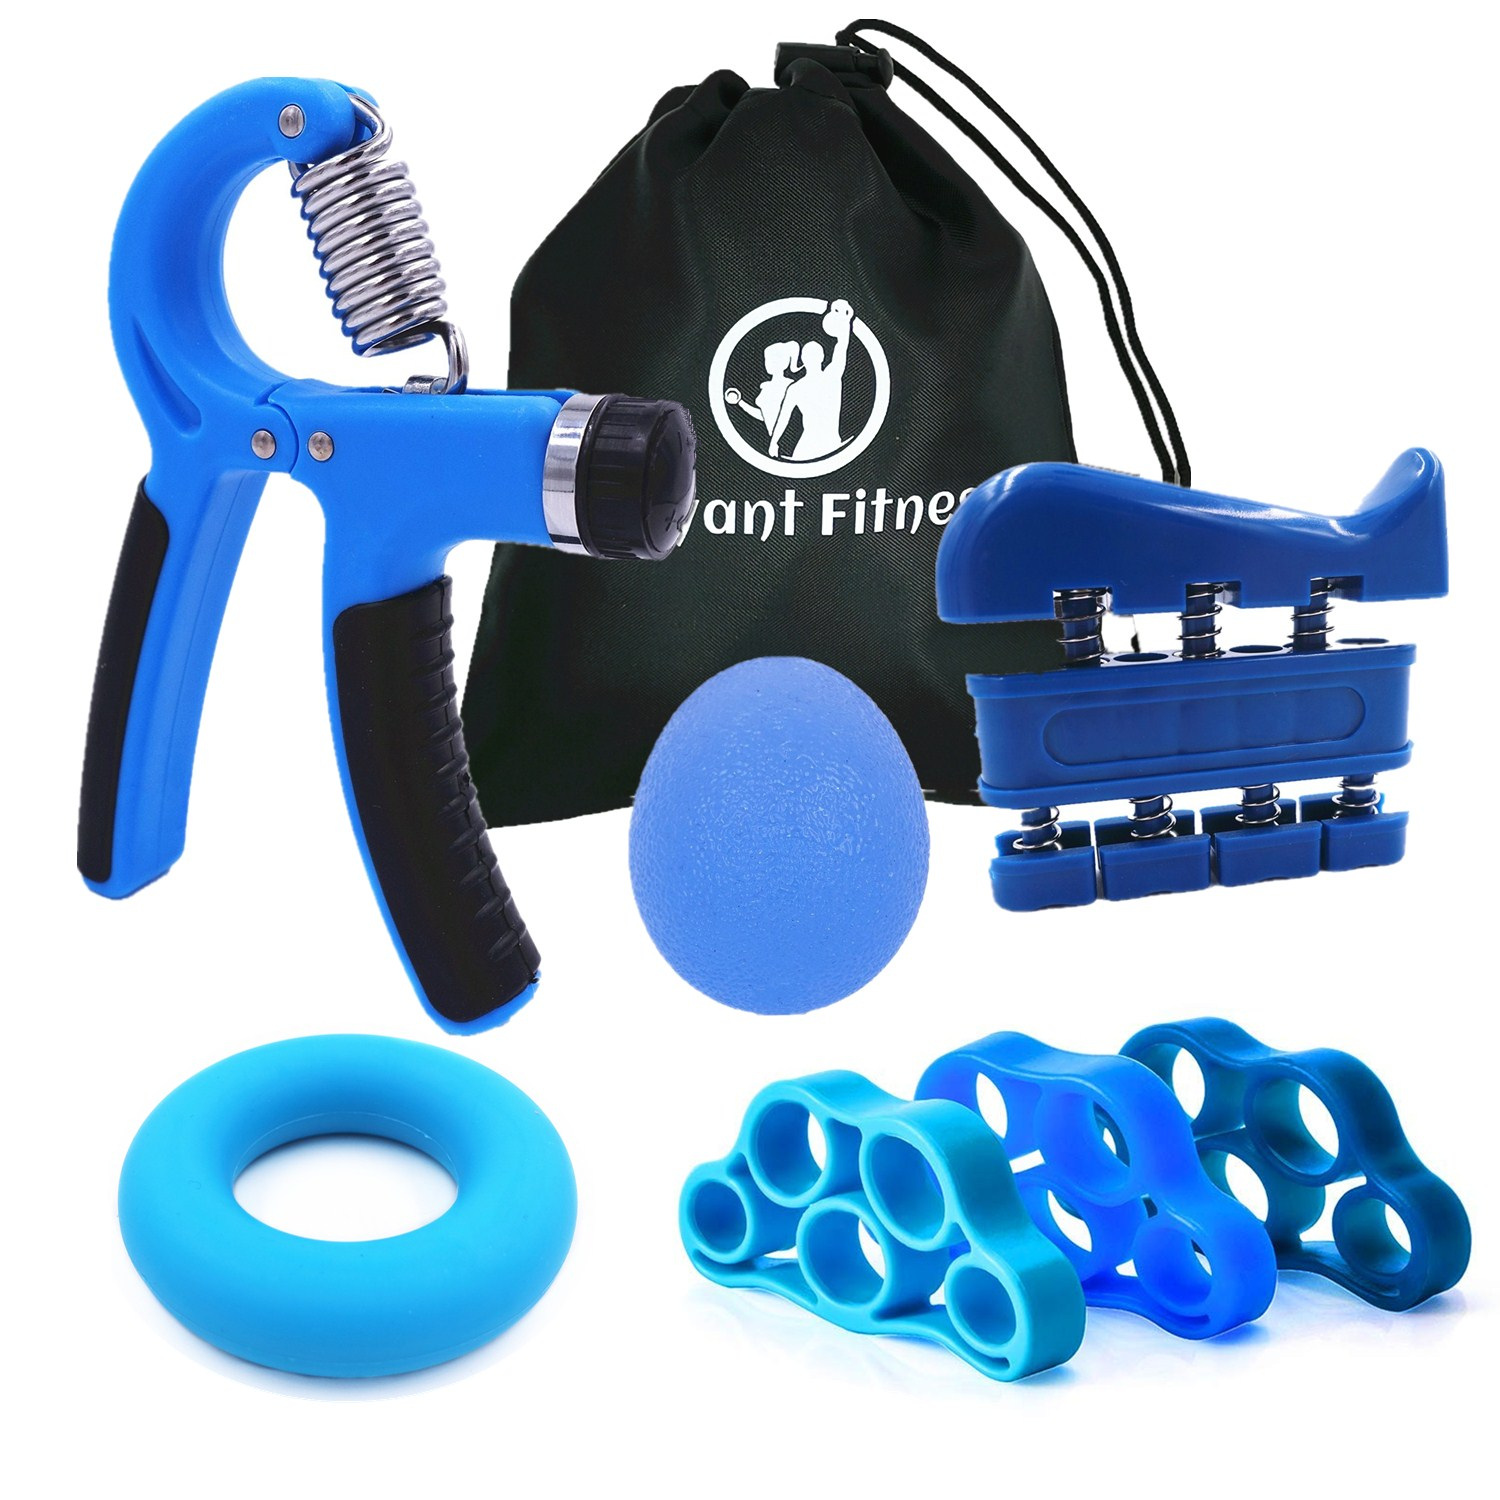 Hand Grip Strengthener Workout Kit Adjustable Hand Gripper Ring Finger Exerciser Band For Rehabilitation And Stress Relief Ball